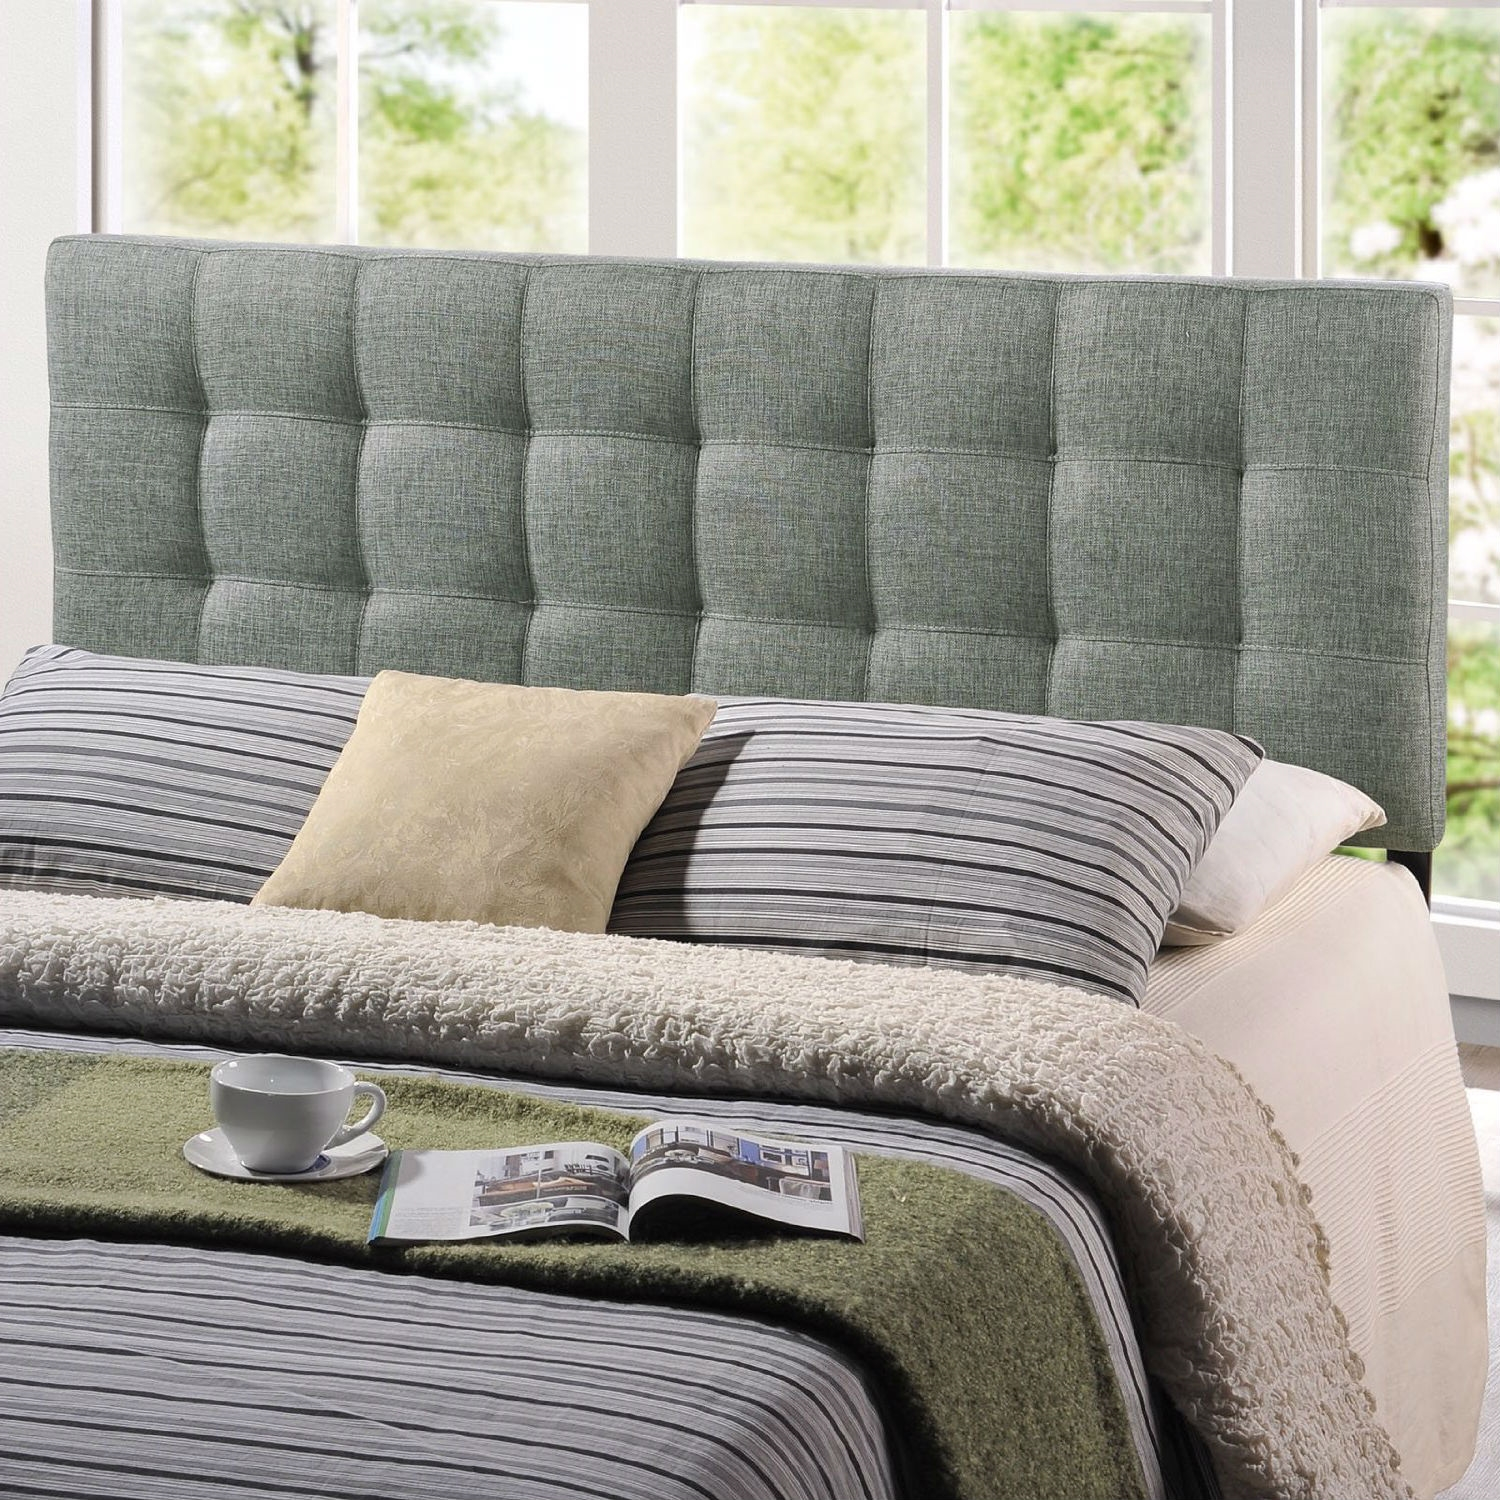 king size grey fabric upholstered headboard with modern tufting. Black Bedroom Furniture Sets. Home Design Ideas